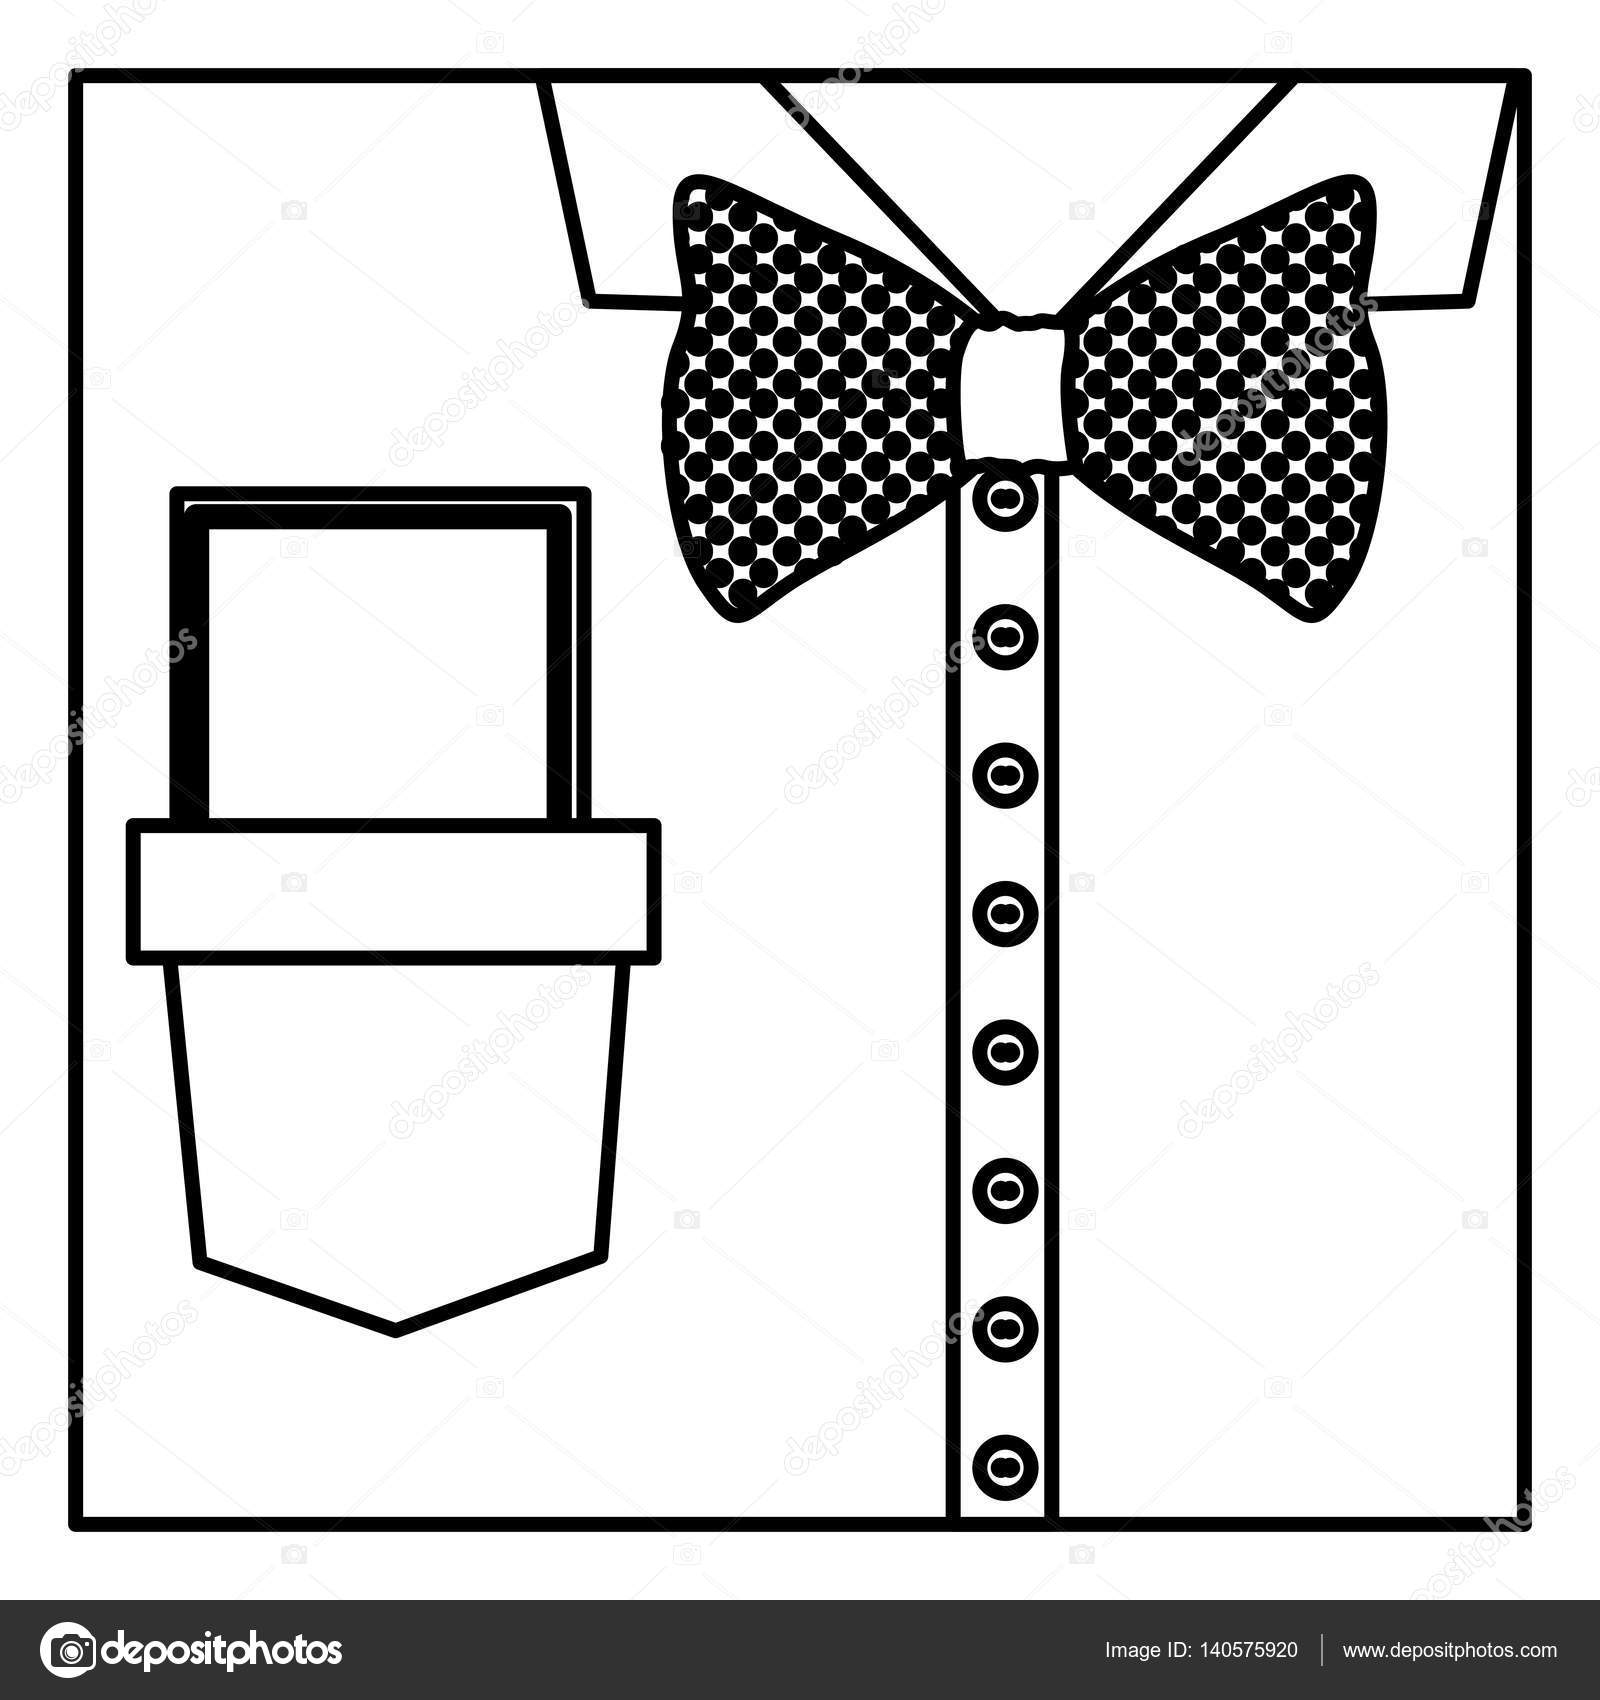 Tie Clipart Black And White | Free download best Tie Clipart Black ... for Tie Clip Art Black And White  199fiz